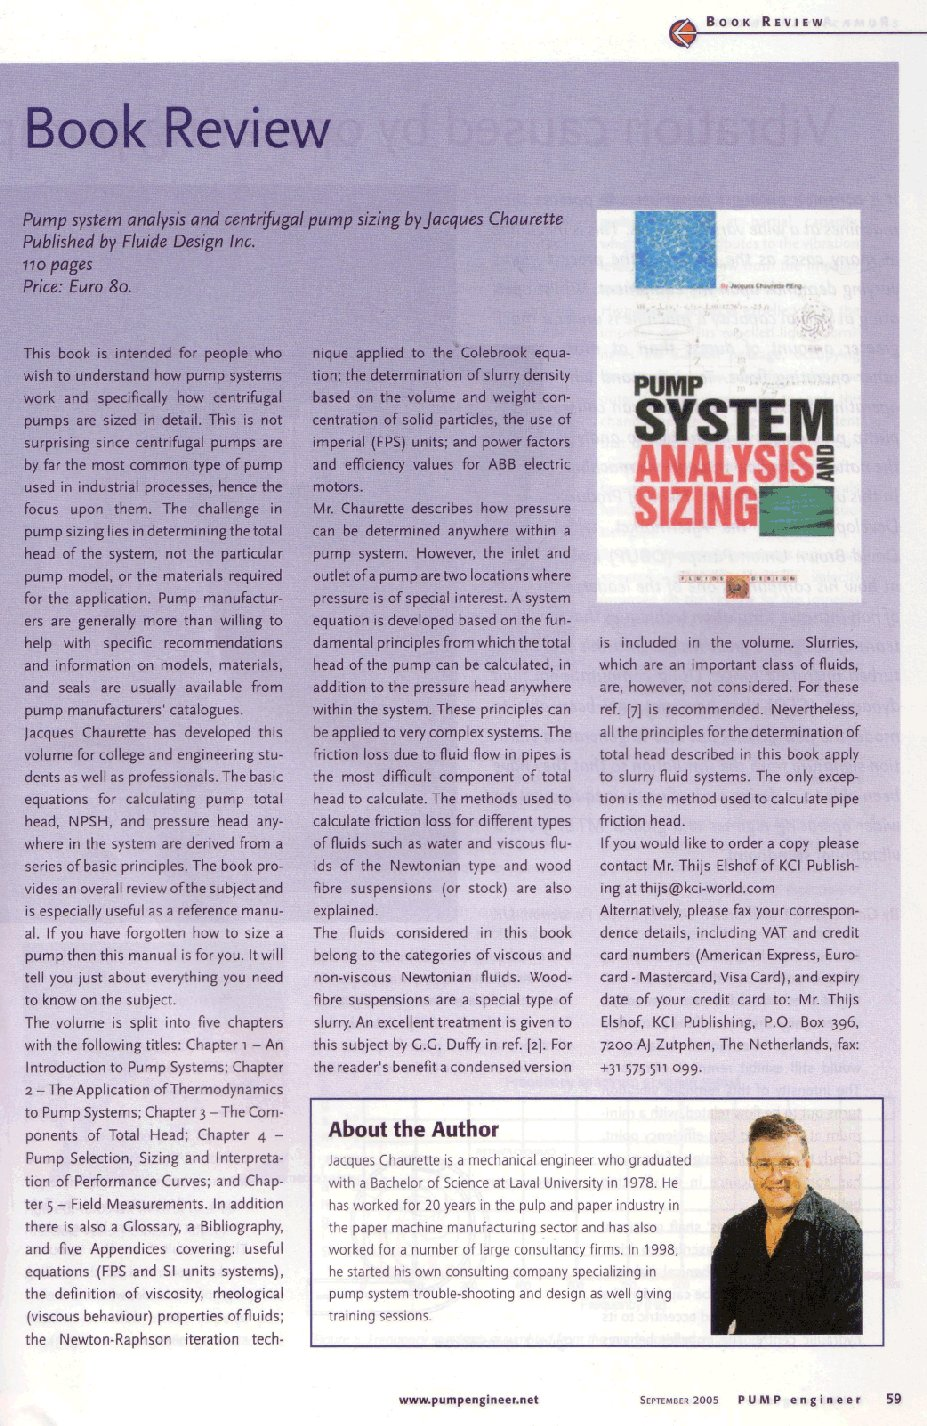 Magazine book review